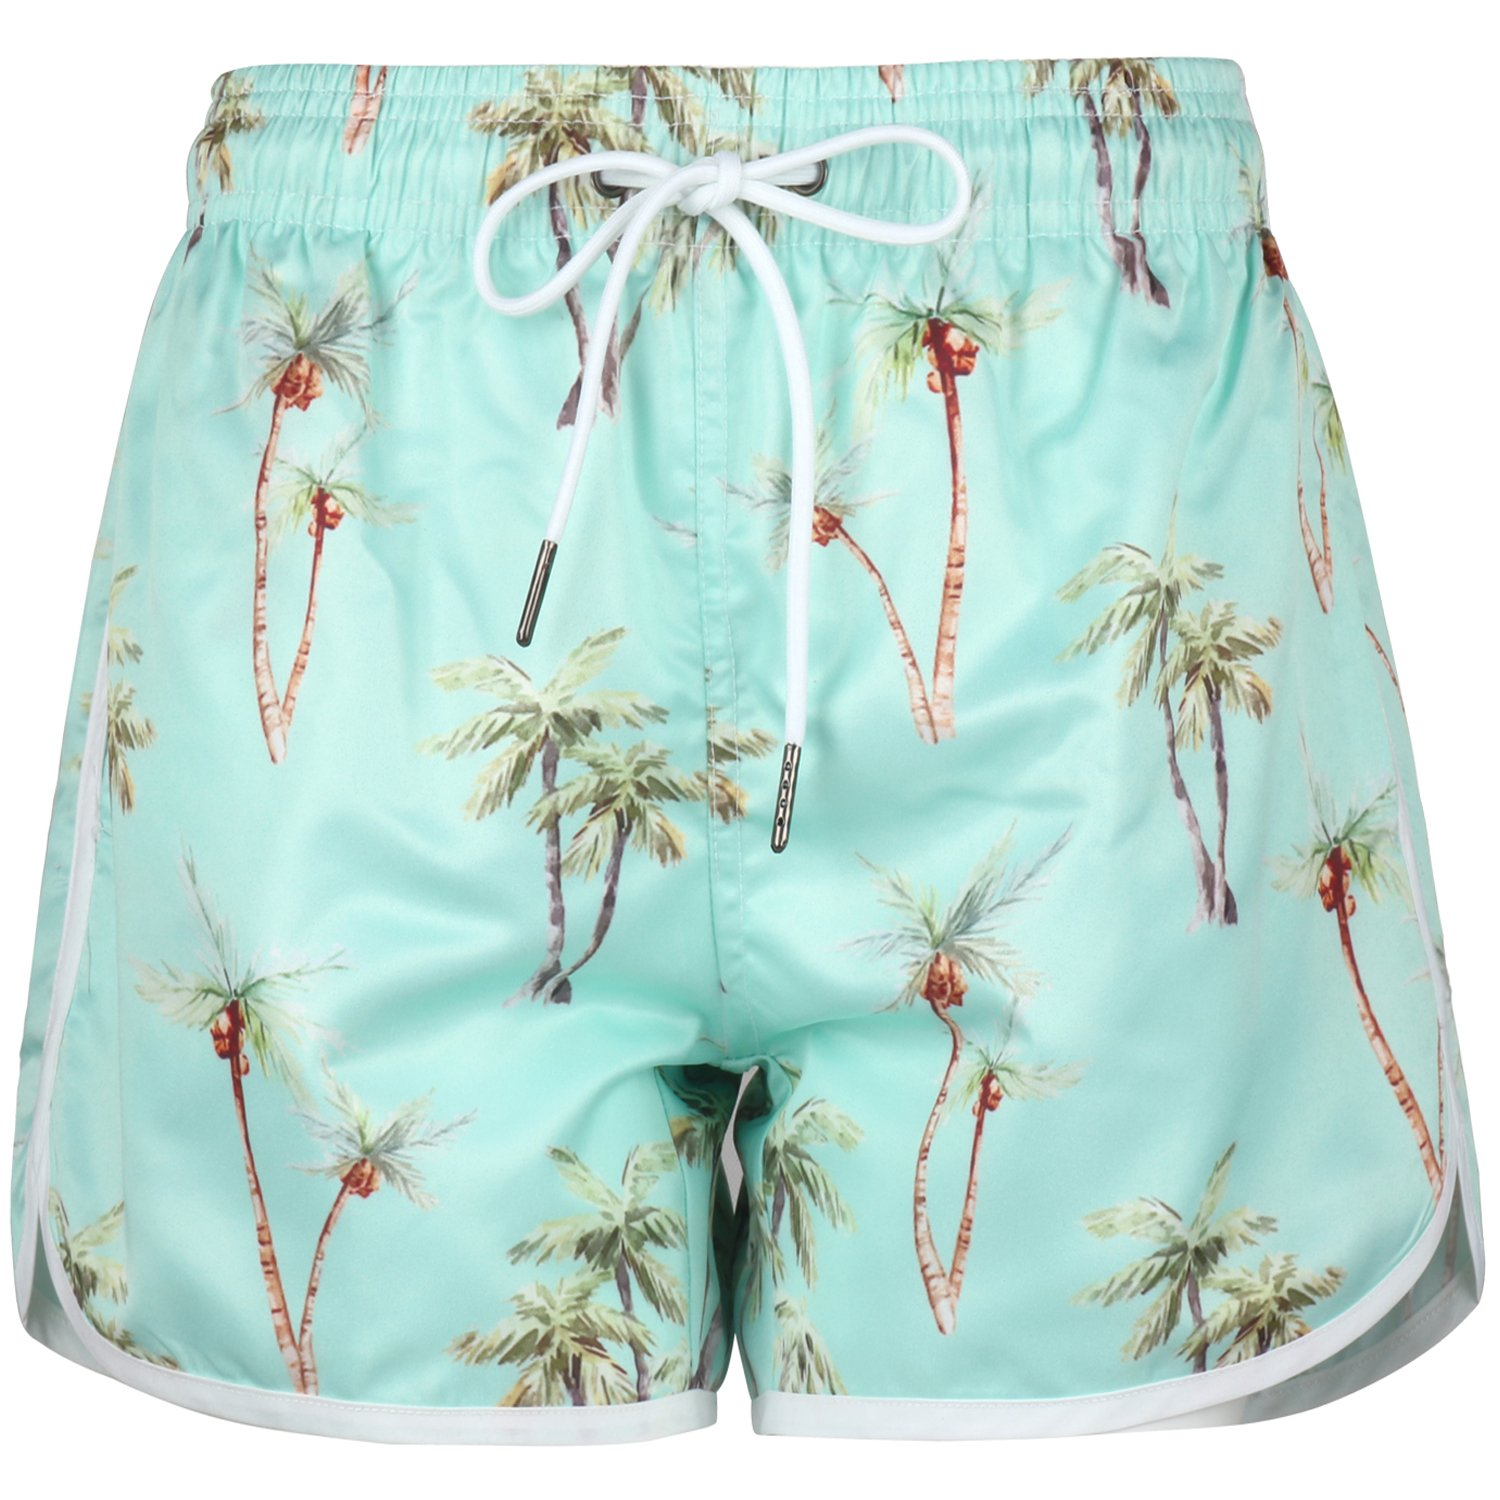 Women's Floral Board Shorts Hawaiian Beach Shorts, Coconut Blue, Small=Tag M